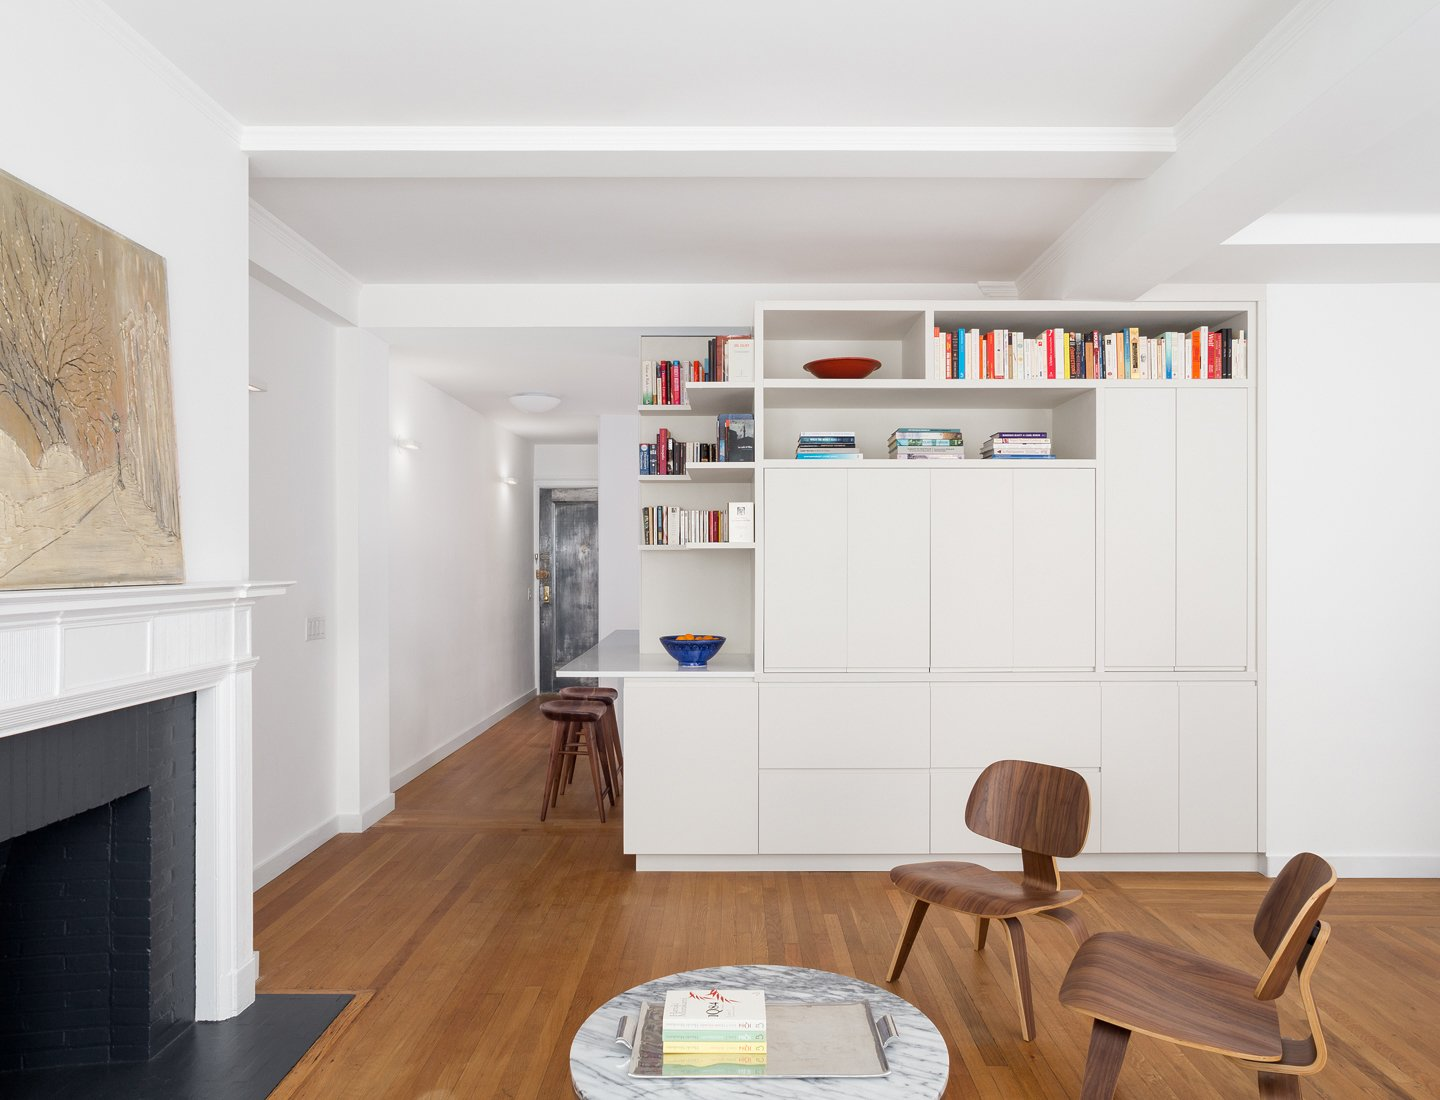 Built in custom millwork conceals the entertainment center and connects to the adjacent kitchen cabinets and counter top.    Prewar Modern Upgrade by kane architecture and urban design